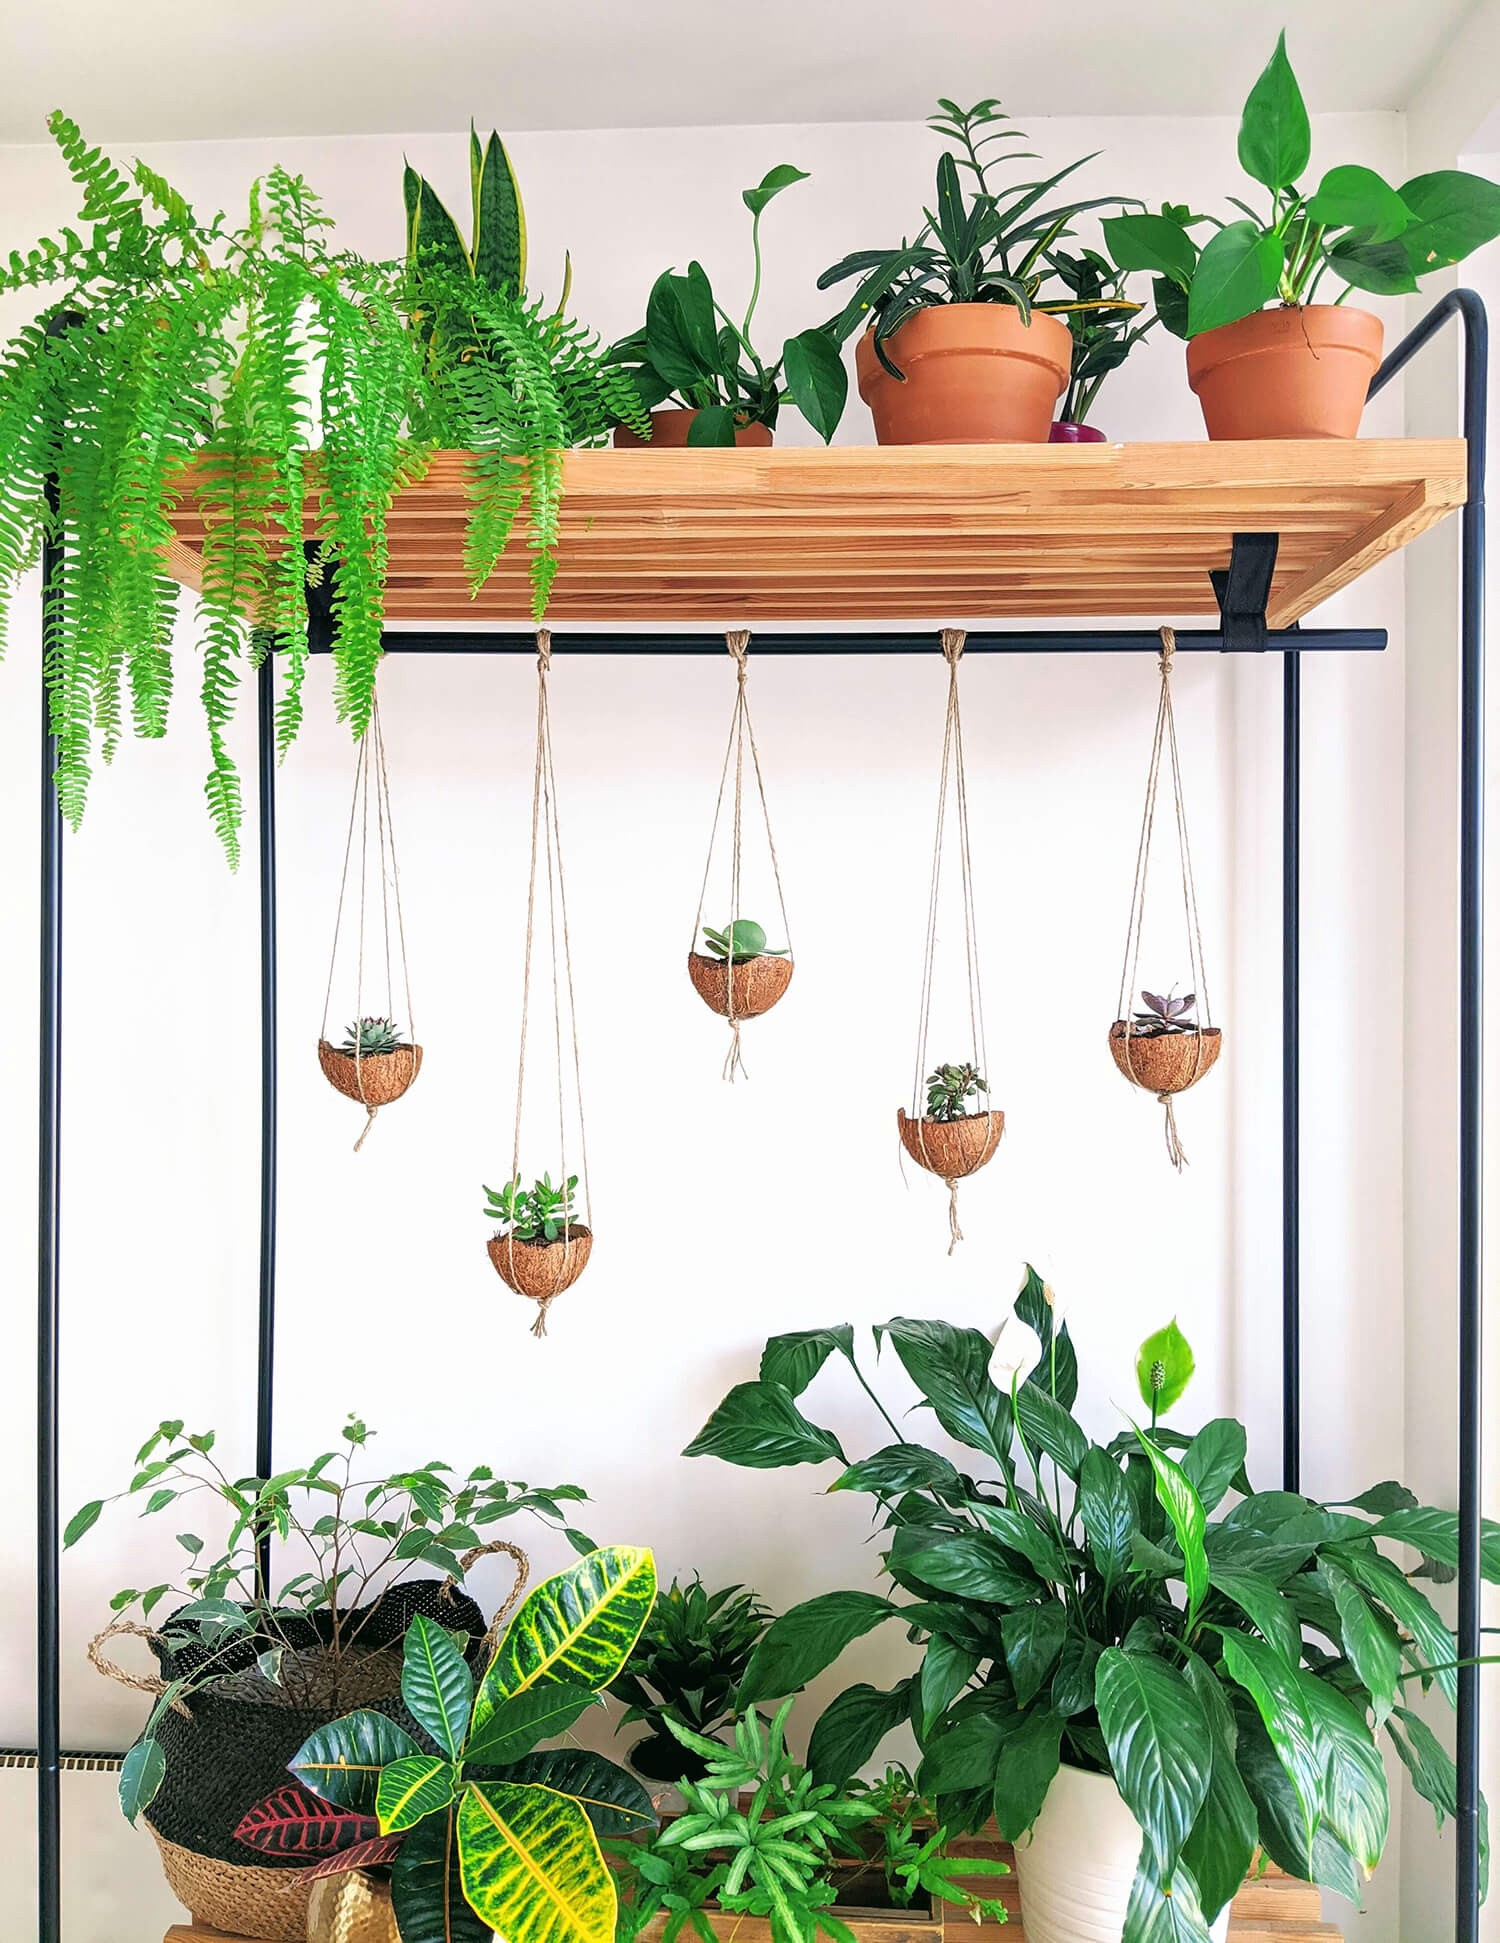 standing wooden shelf with indoor plants and hanging coconut planters